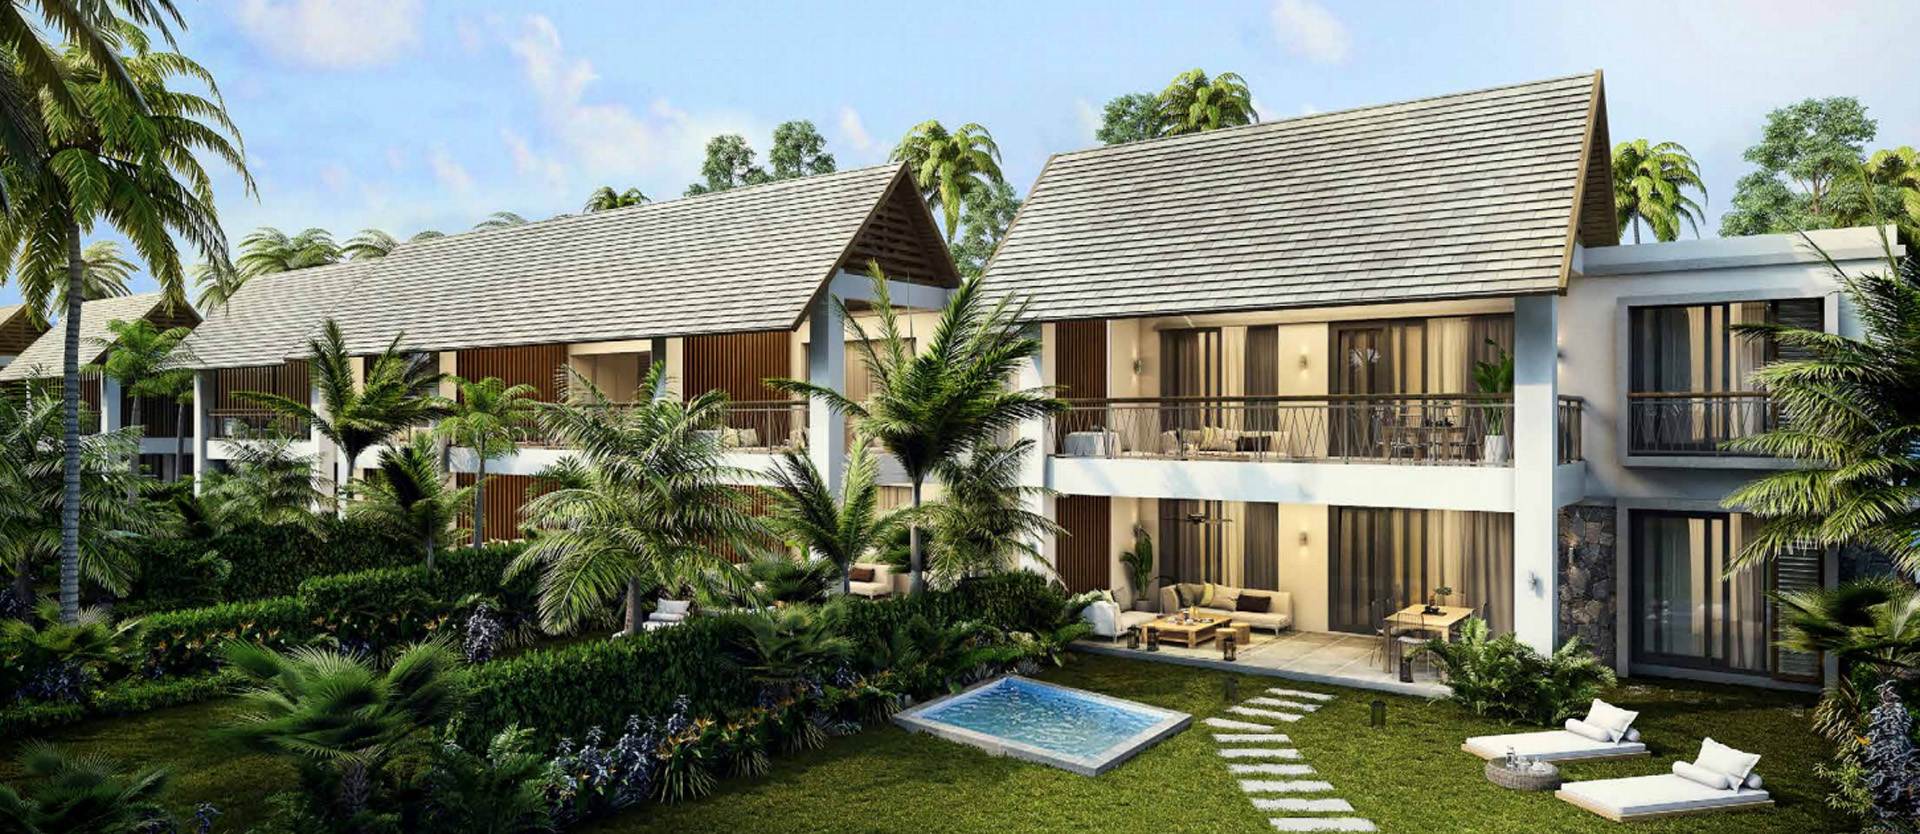 property for sale mauritius